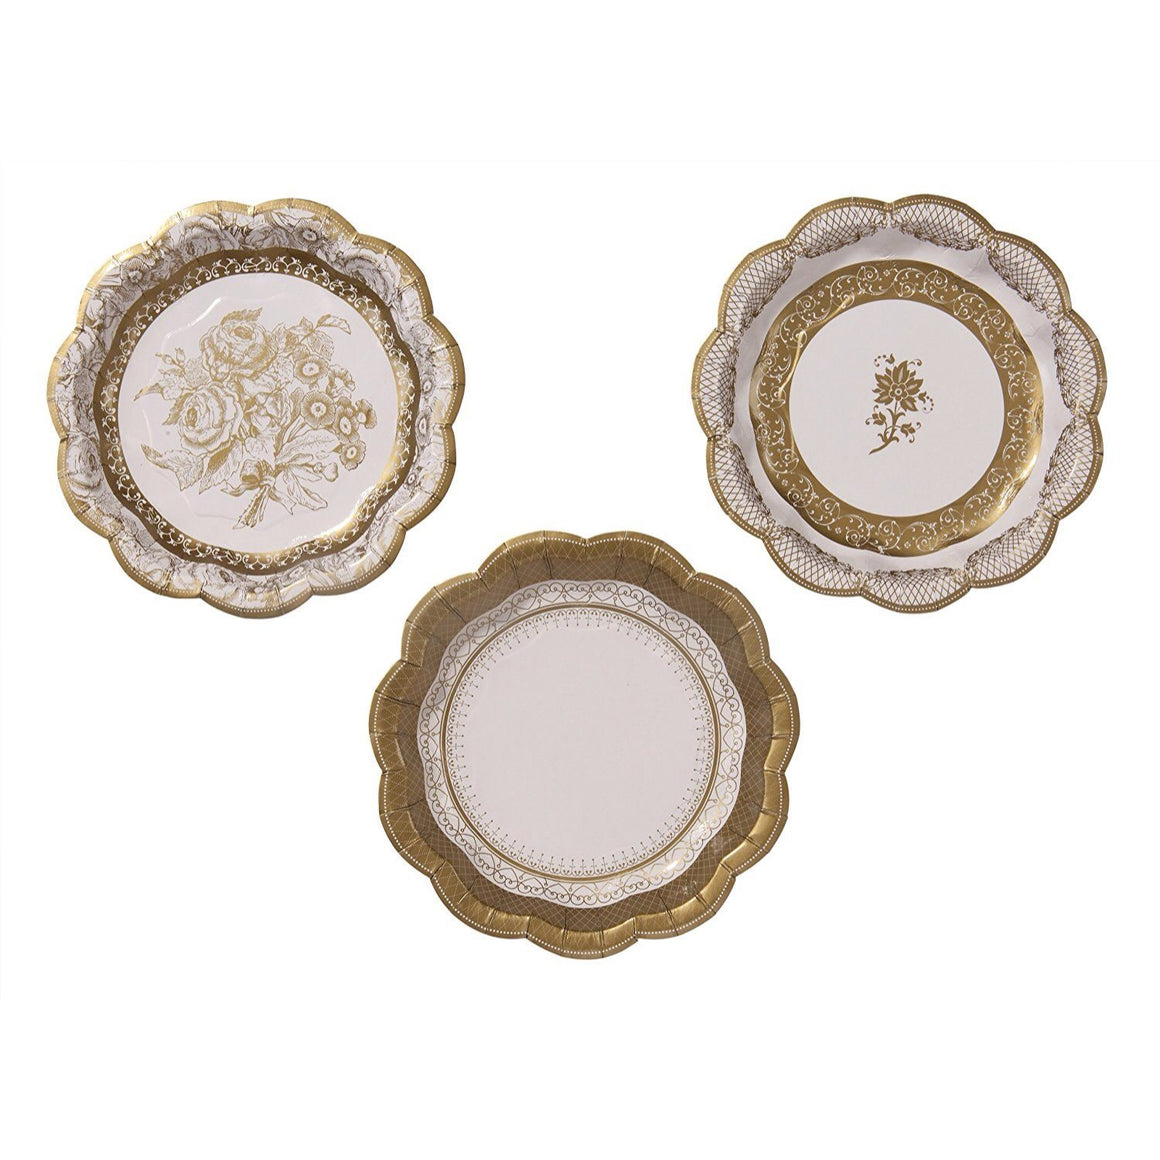 PLATES - SMALL TRIO PARTY PORCELAIN GOLD